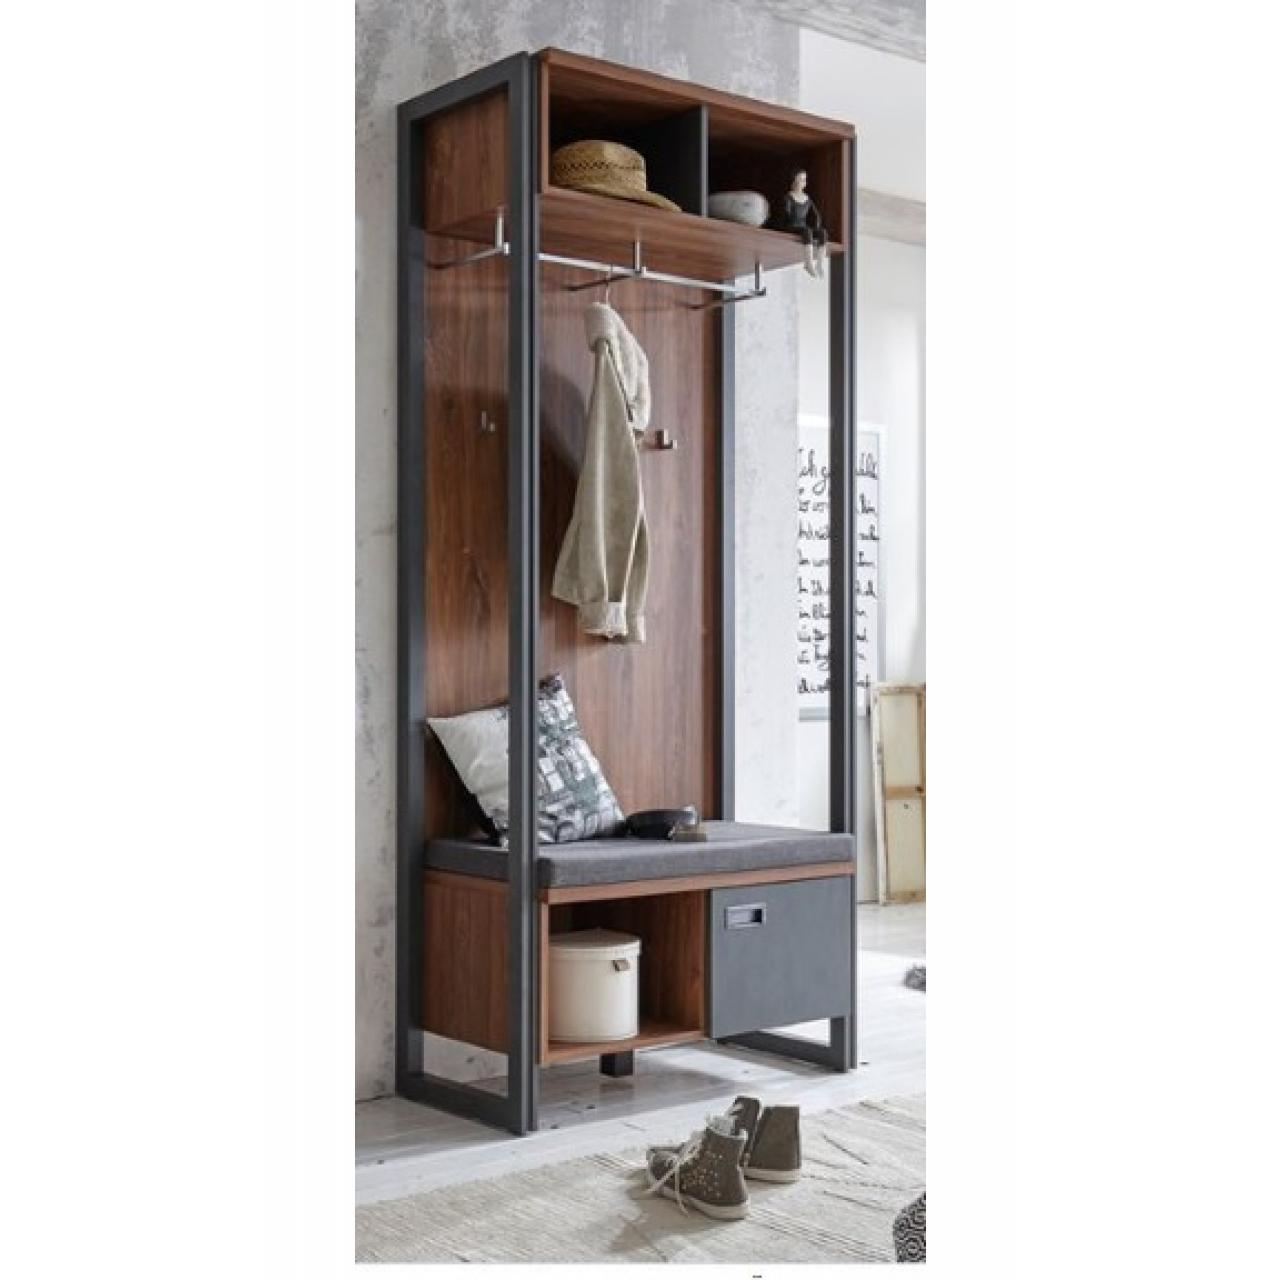 garderobe mit sitzkissen garderoben wohnen m bel j hnichen center gmbh. Black Bedroom Furniture Sets. Home Design Ideas